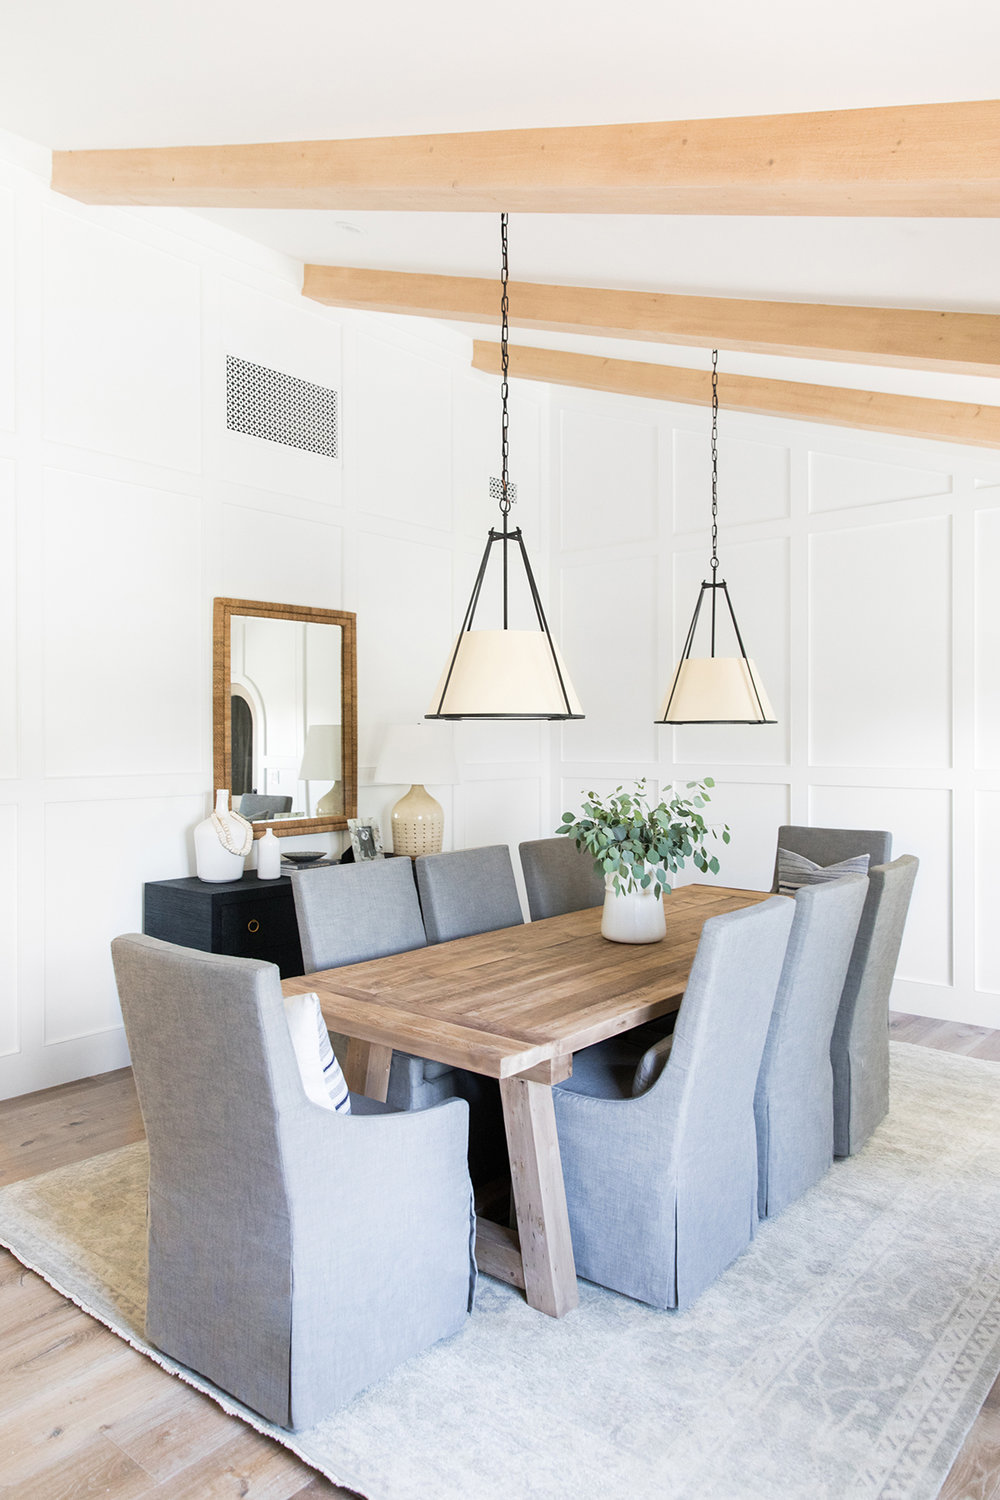 Dining+Room+_+Natural+Beams.jpg